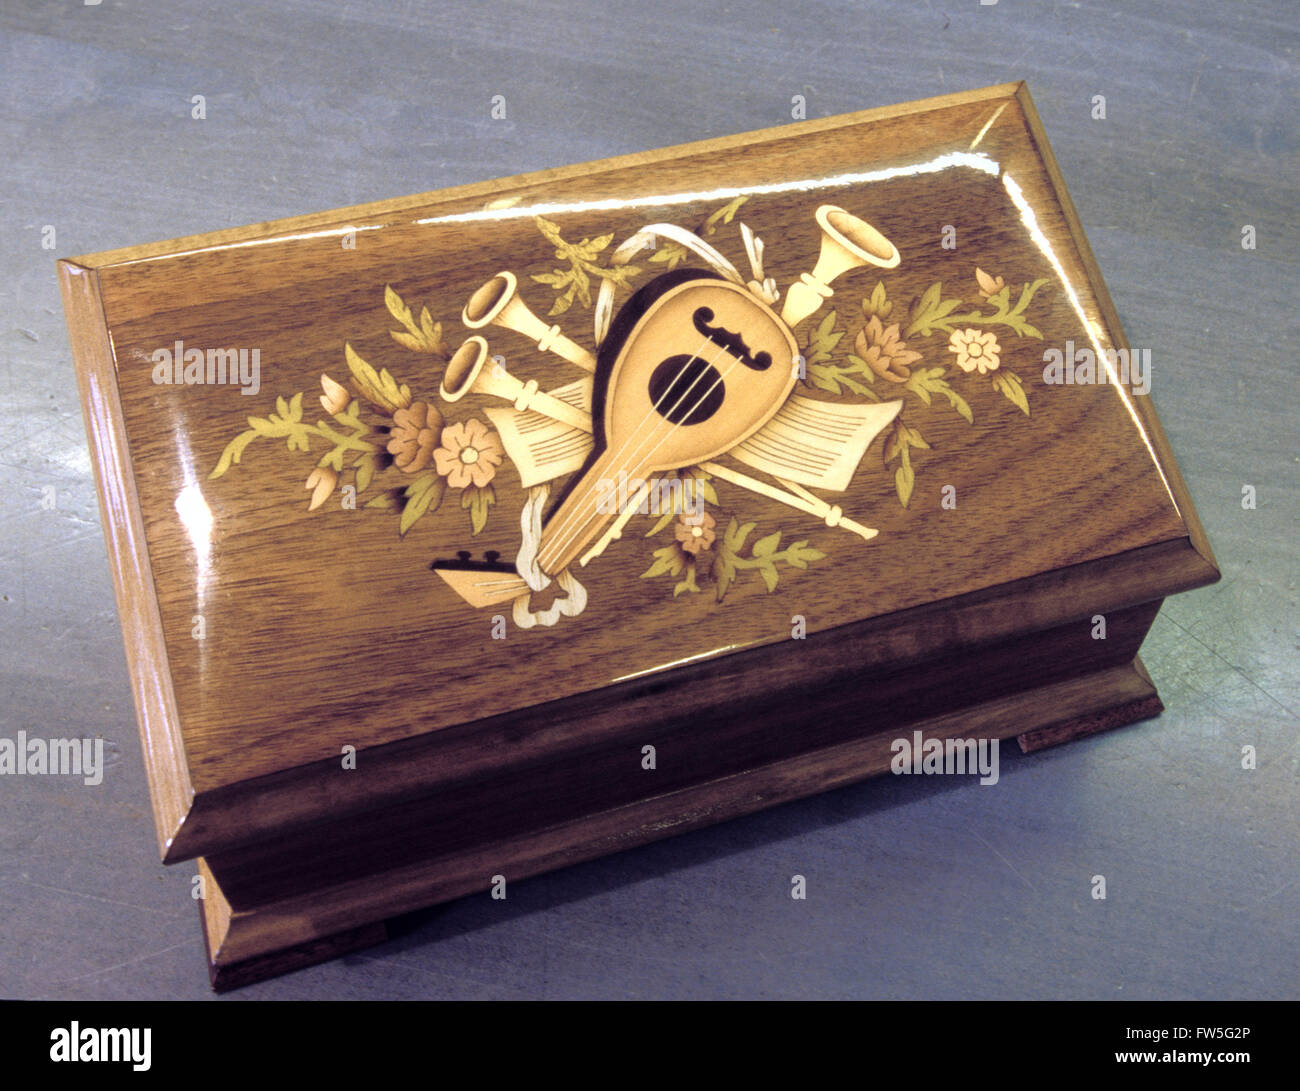 Miniature music box - close up of a closed rectangular music box showing inlaid woodwork. Italian design showing - Stock Image